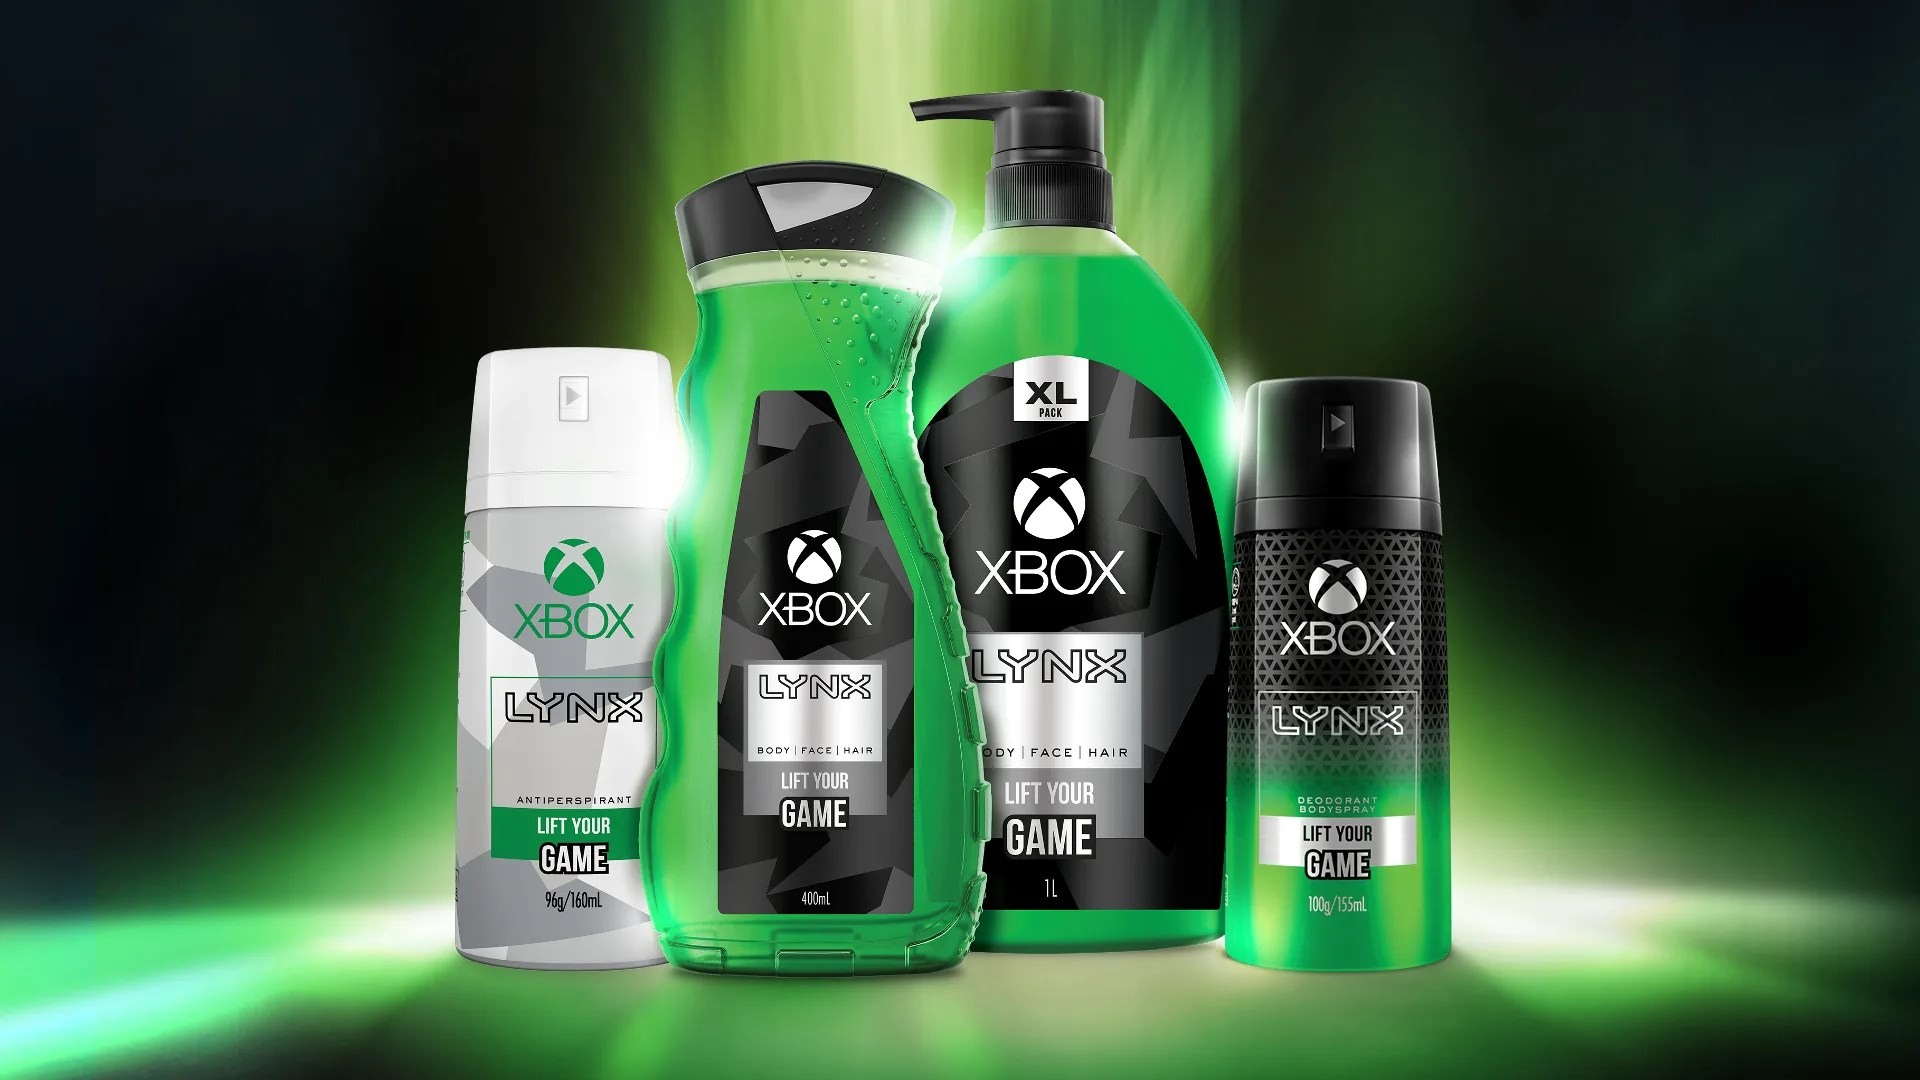 Xbox body care products & deodorant - funglr Games